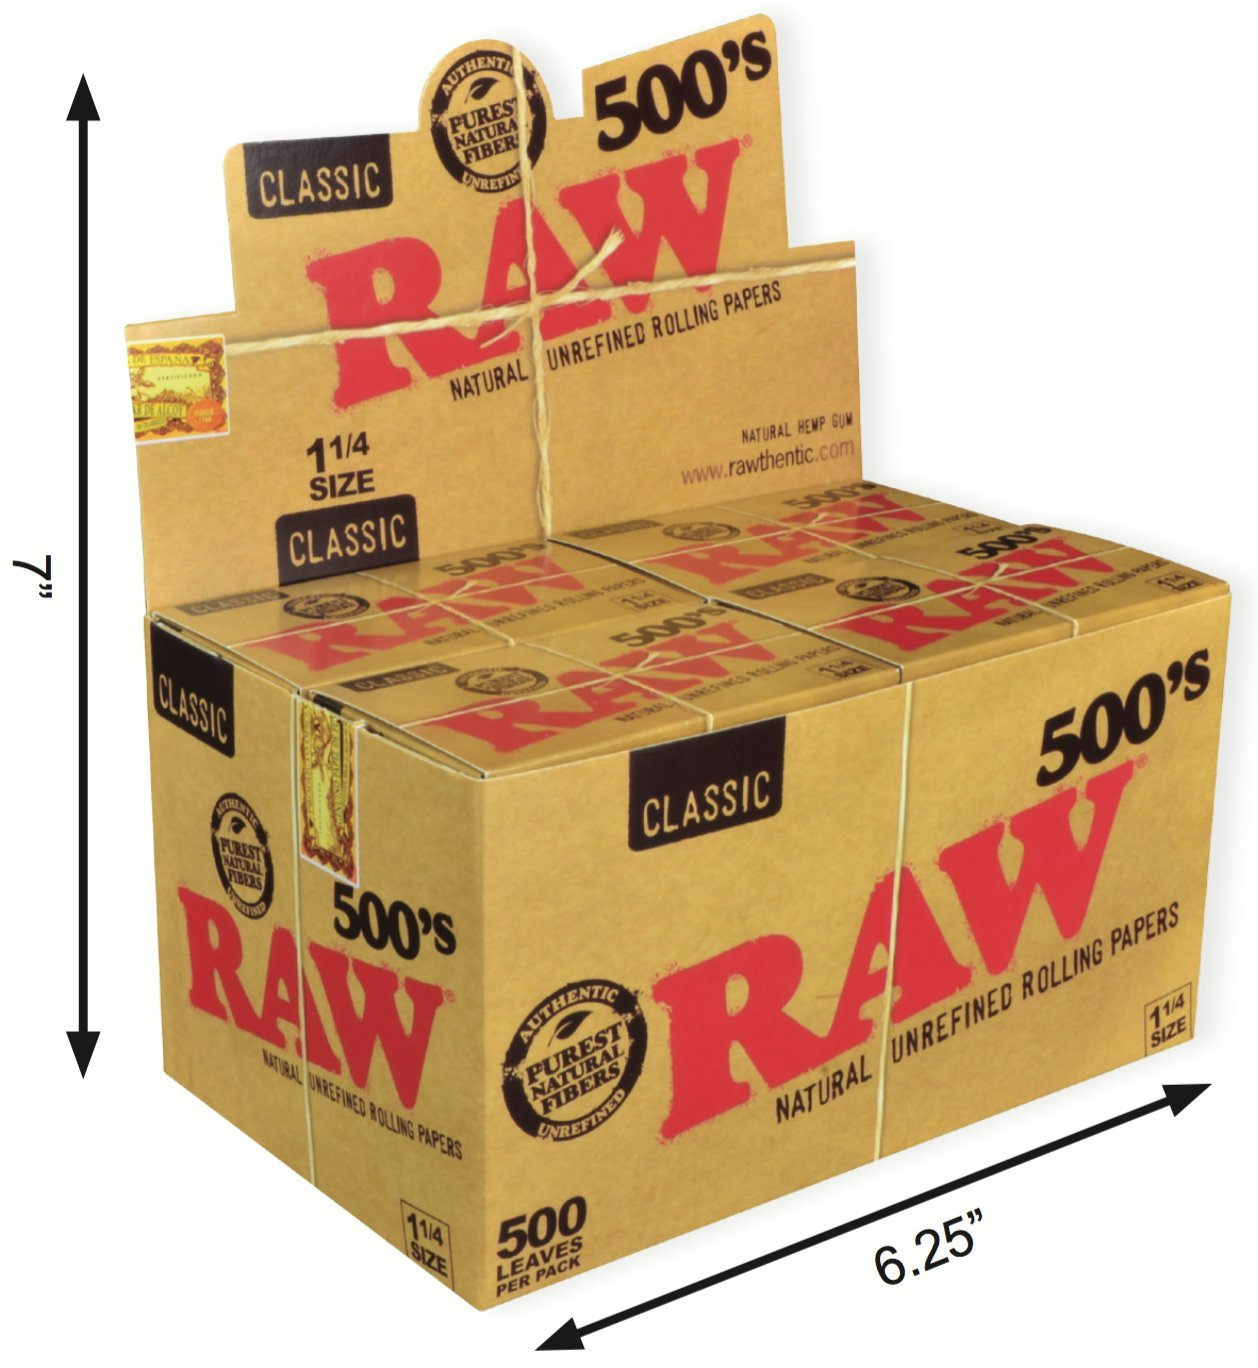 RAW 500's Classic Natural Unrefined Rolling Paper 1 1/4 79mm Size (20)